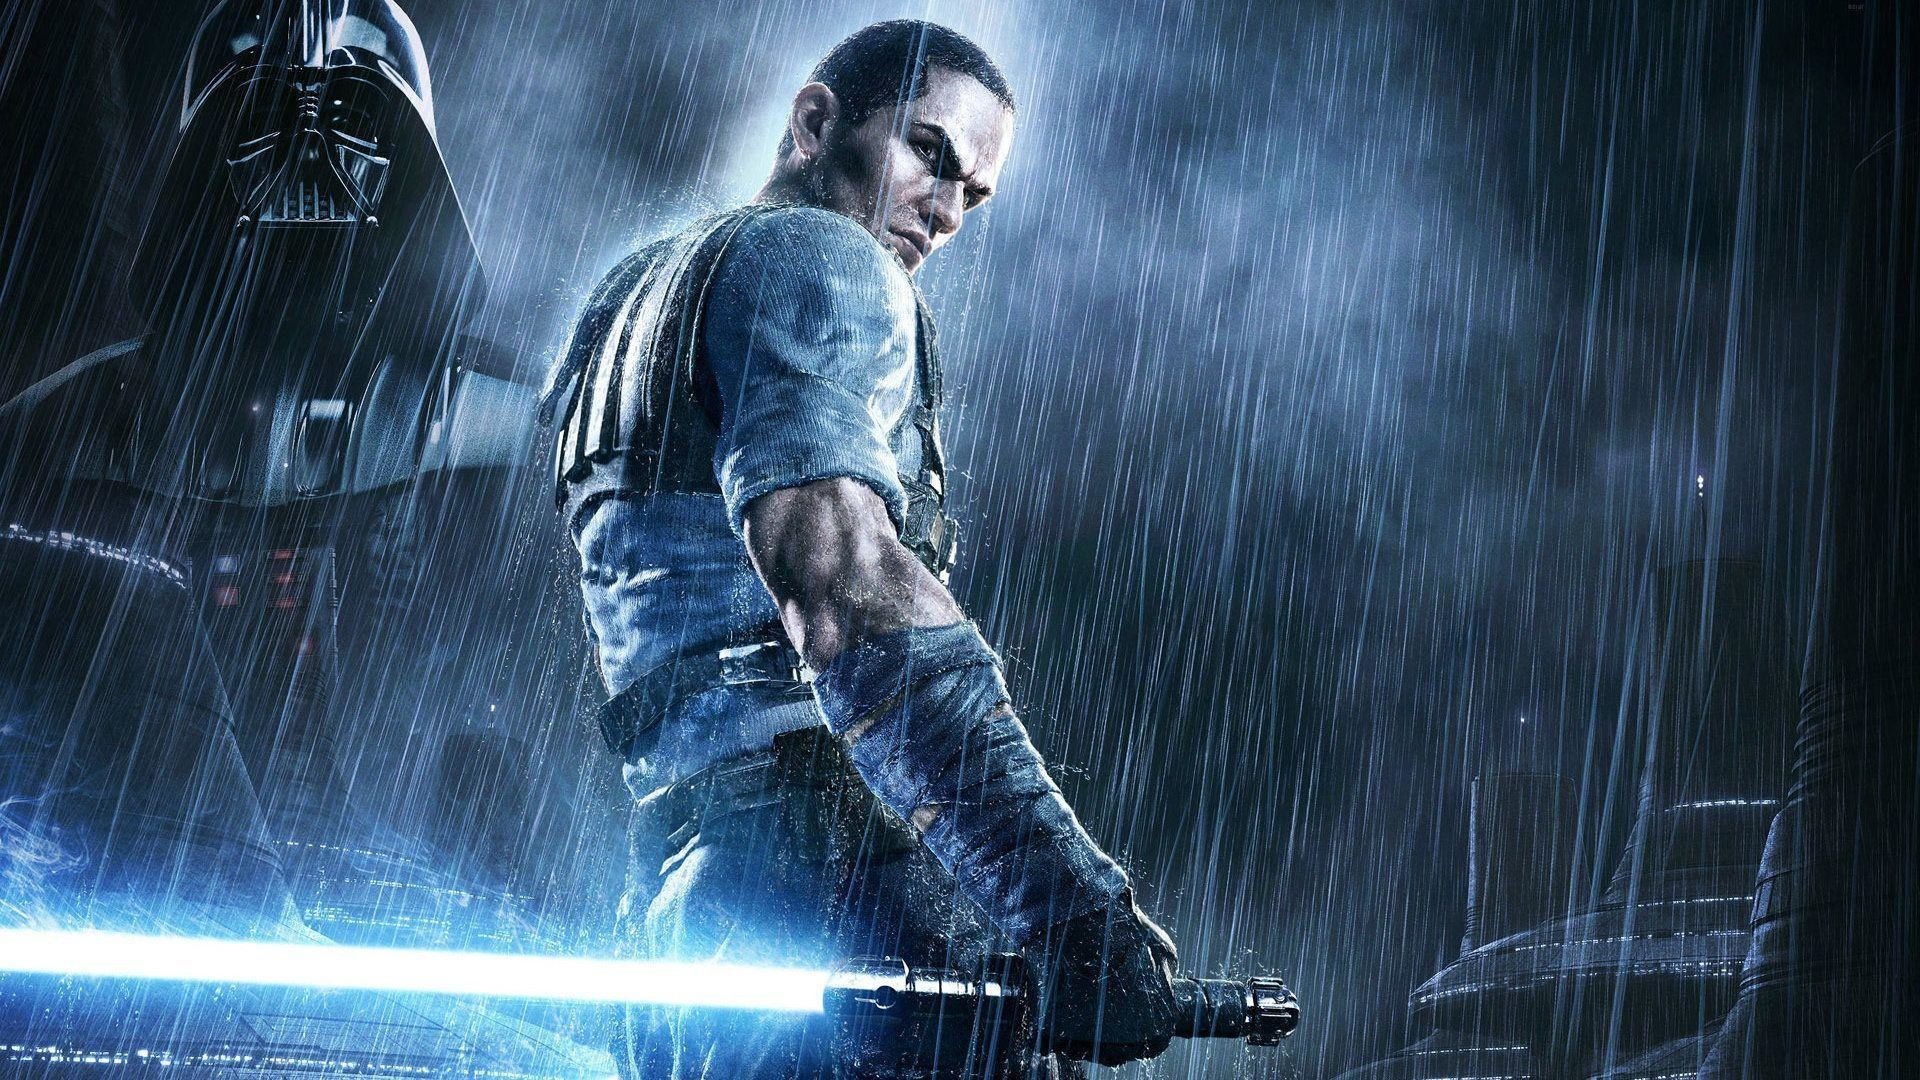 HD Star Wars: The Force Unleashed II with Starkiller Wallpaper